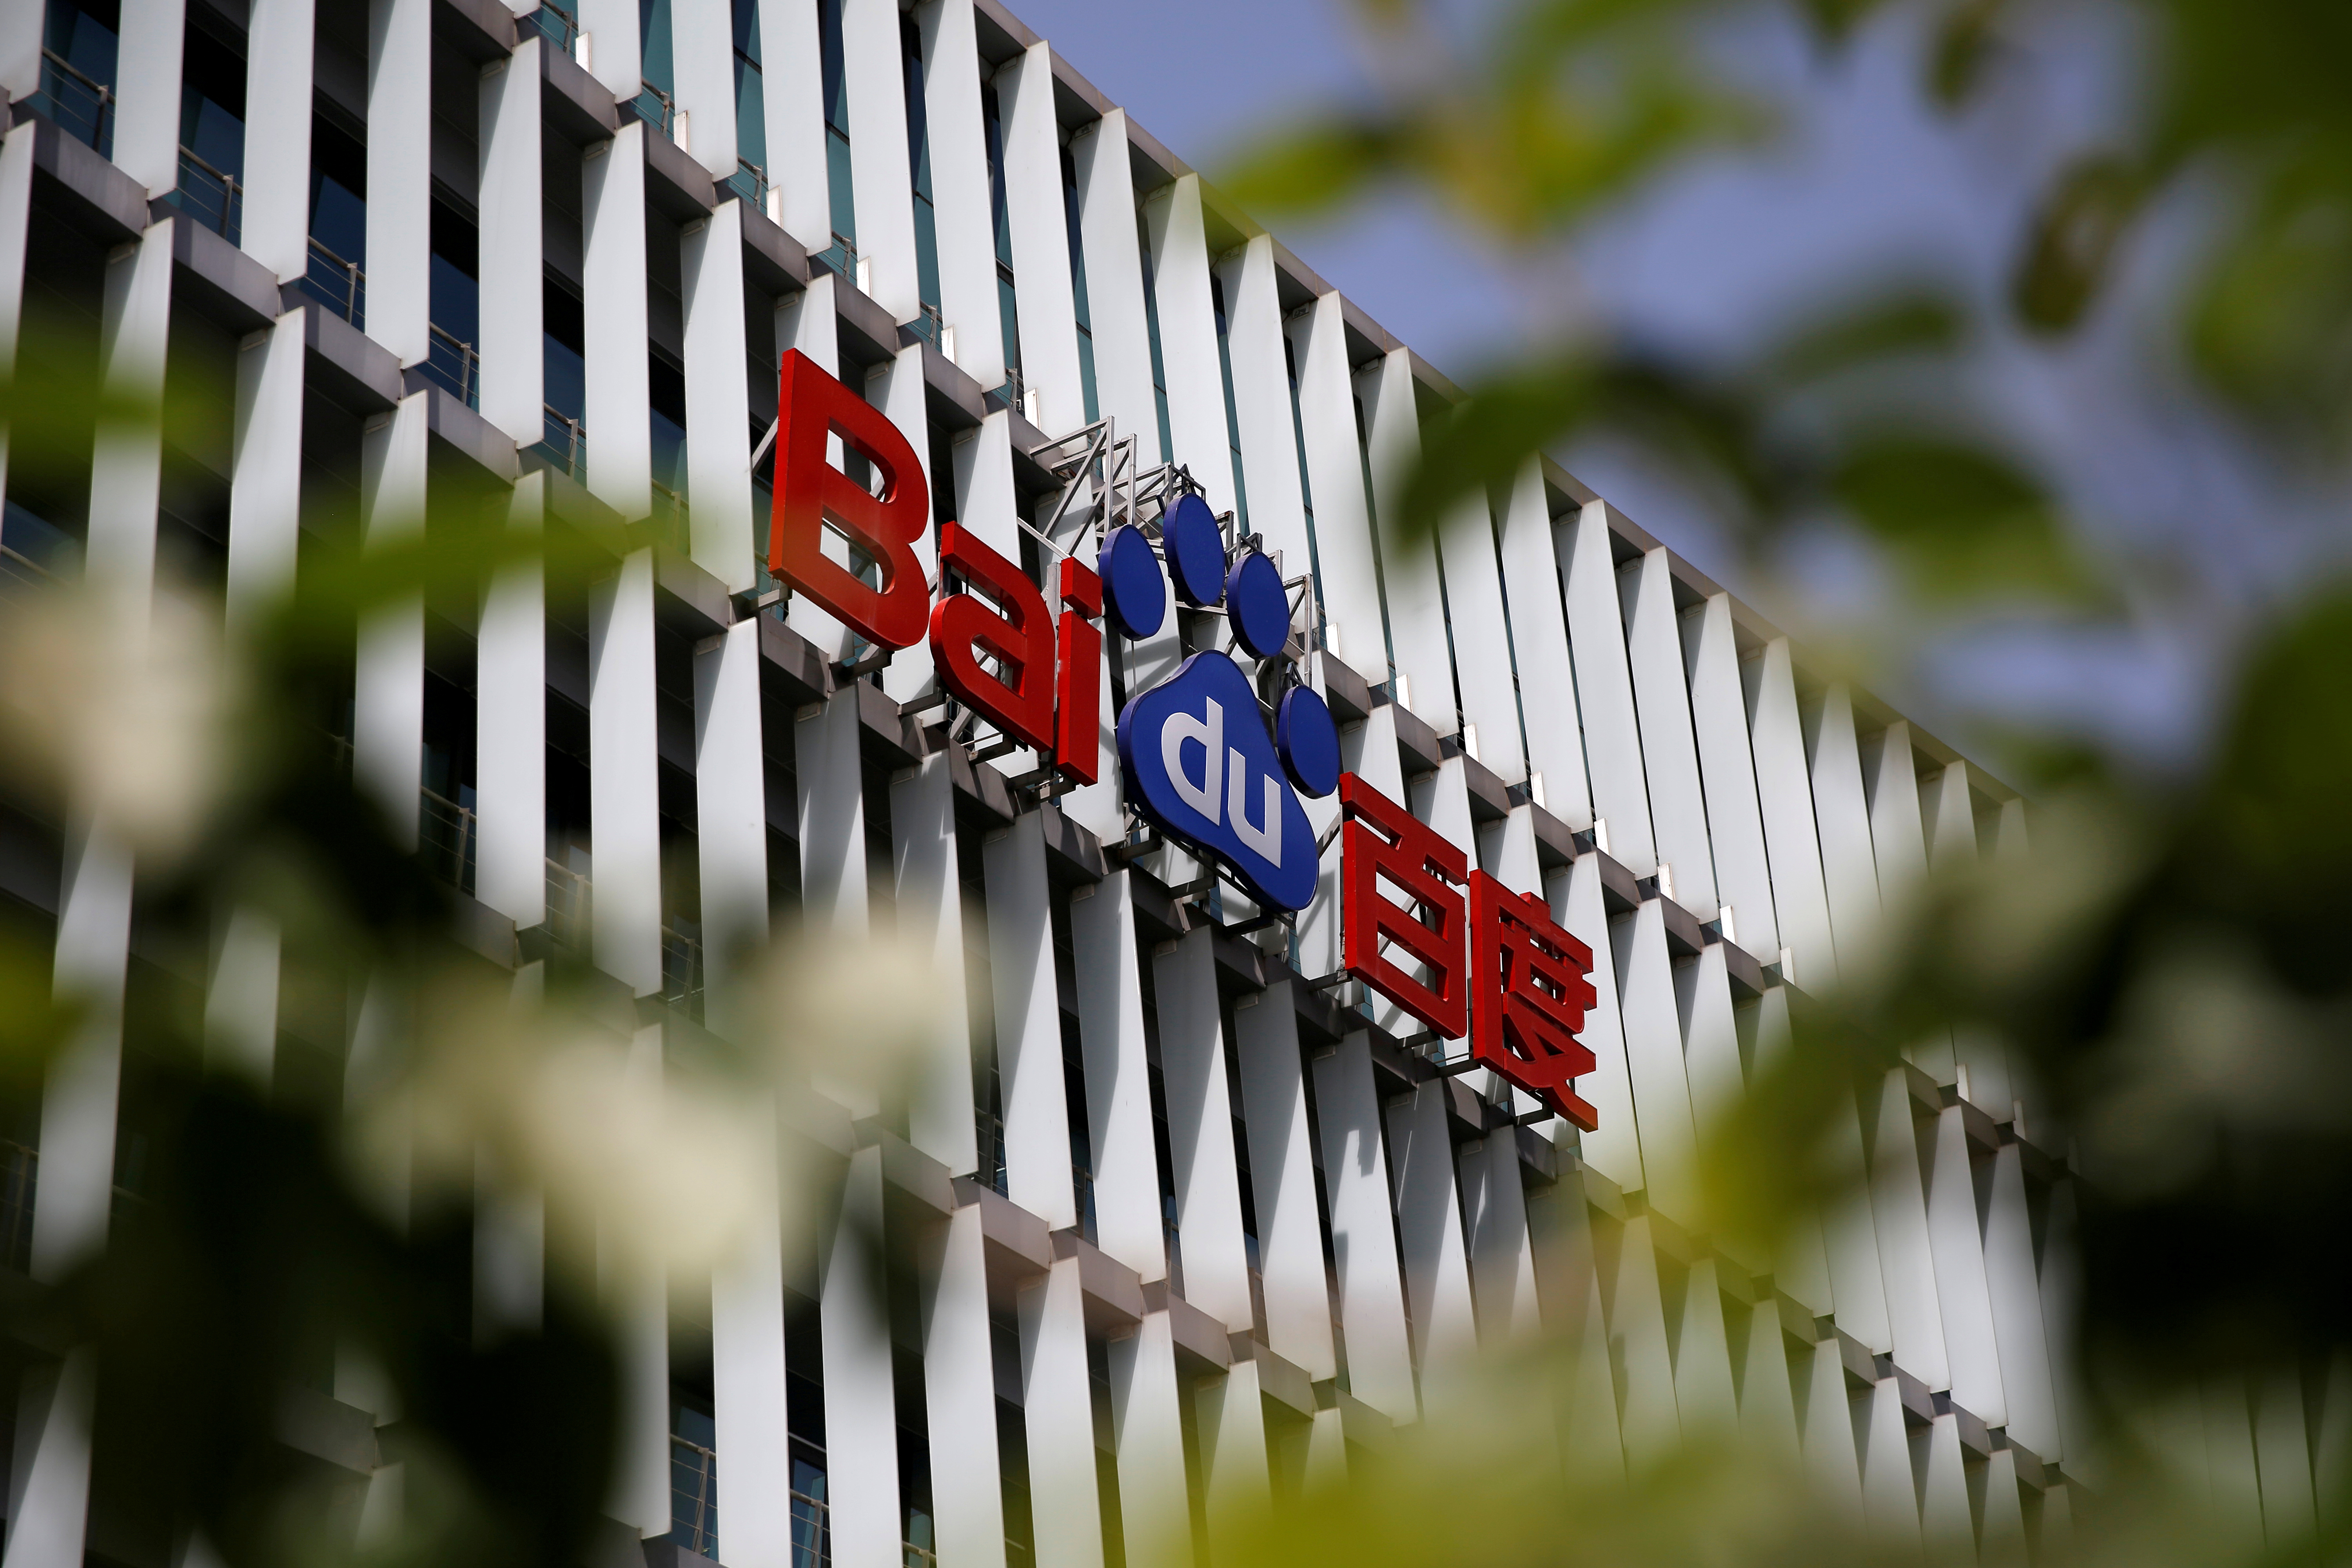 The logo of Chinese search engine leader Baidu is seen at the company's headquarters in Beijing, China May 18, 2020. REUTERS/Tingshu Wang/File Photo